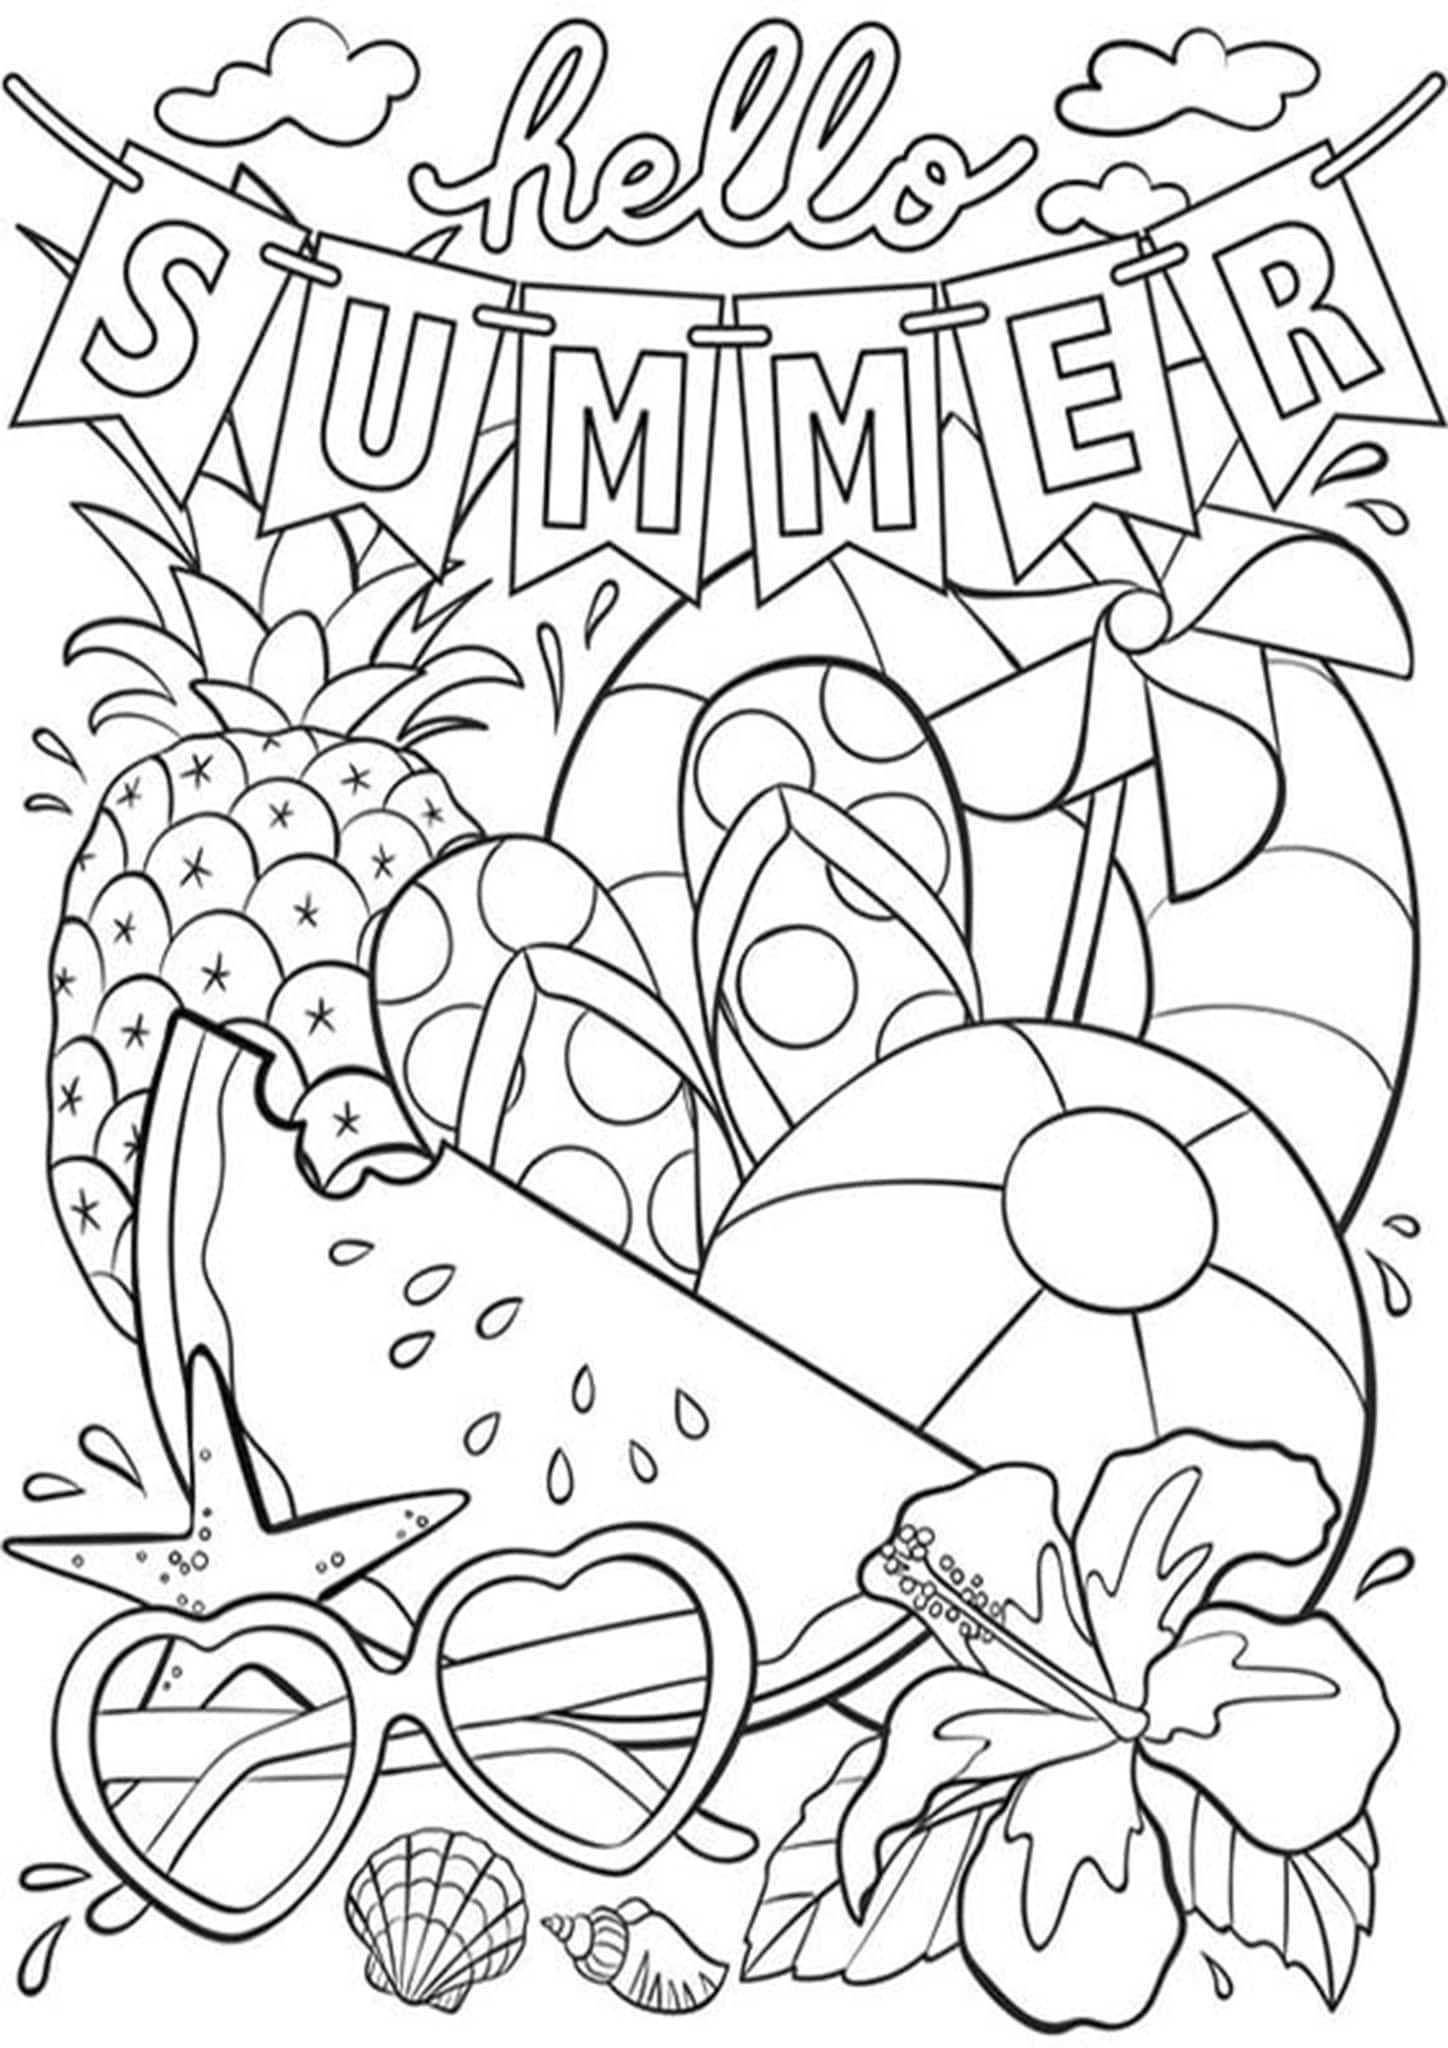 Free Easy To Print Summer Coloring Pages Summer Coloring Sheets Summer Coloring Pages Cool Coloring Pages